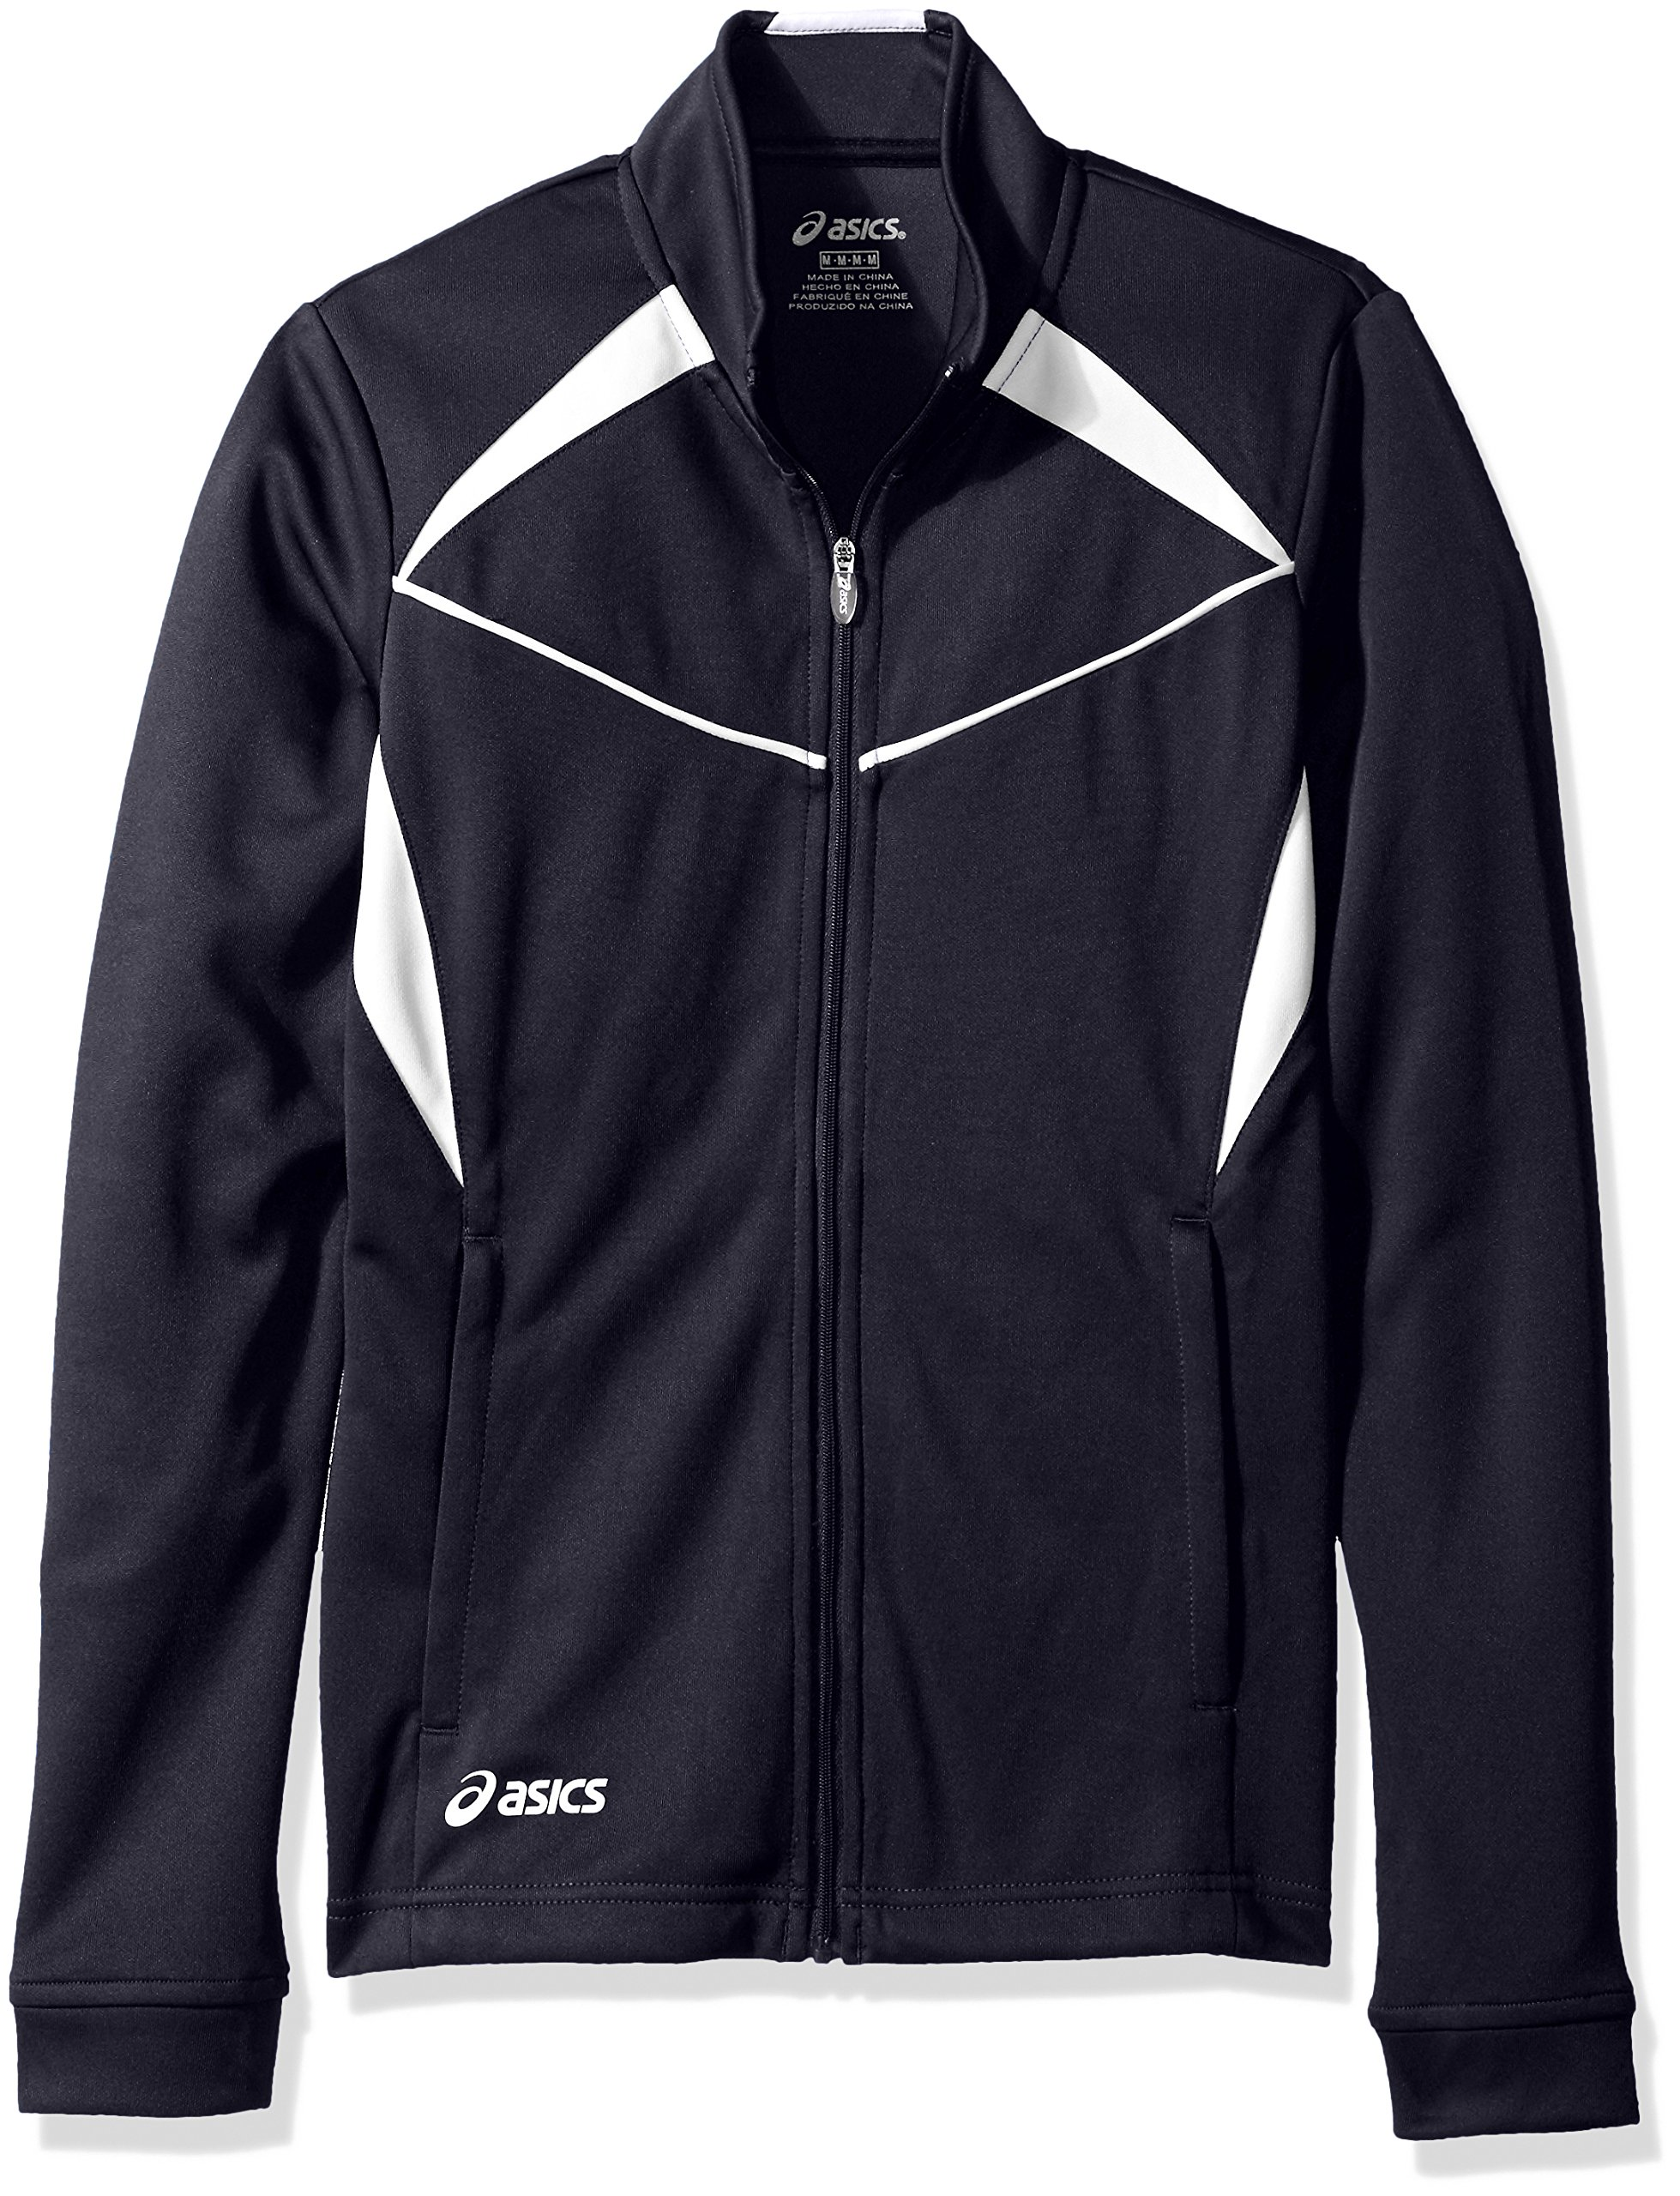 ASICS Jr Cali Jacket, Navy/White, Large by ASICS